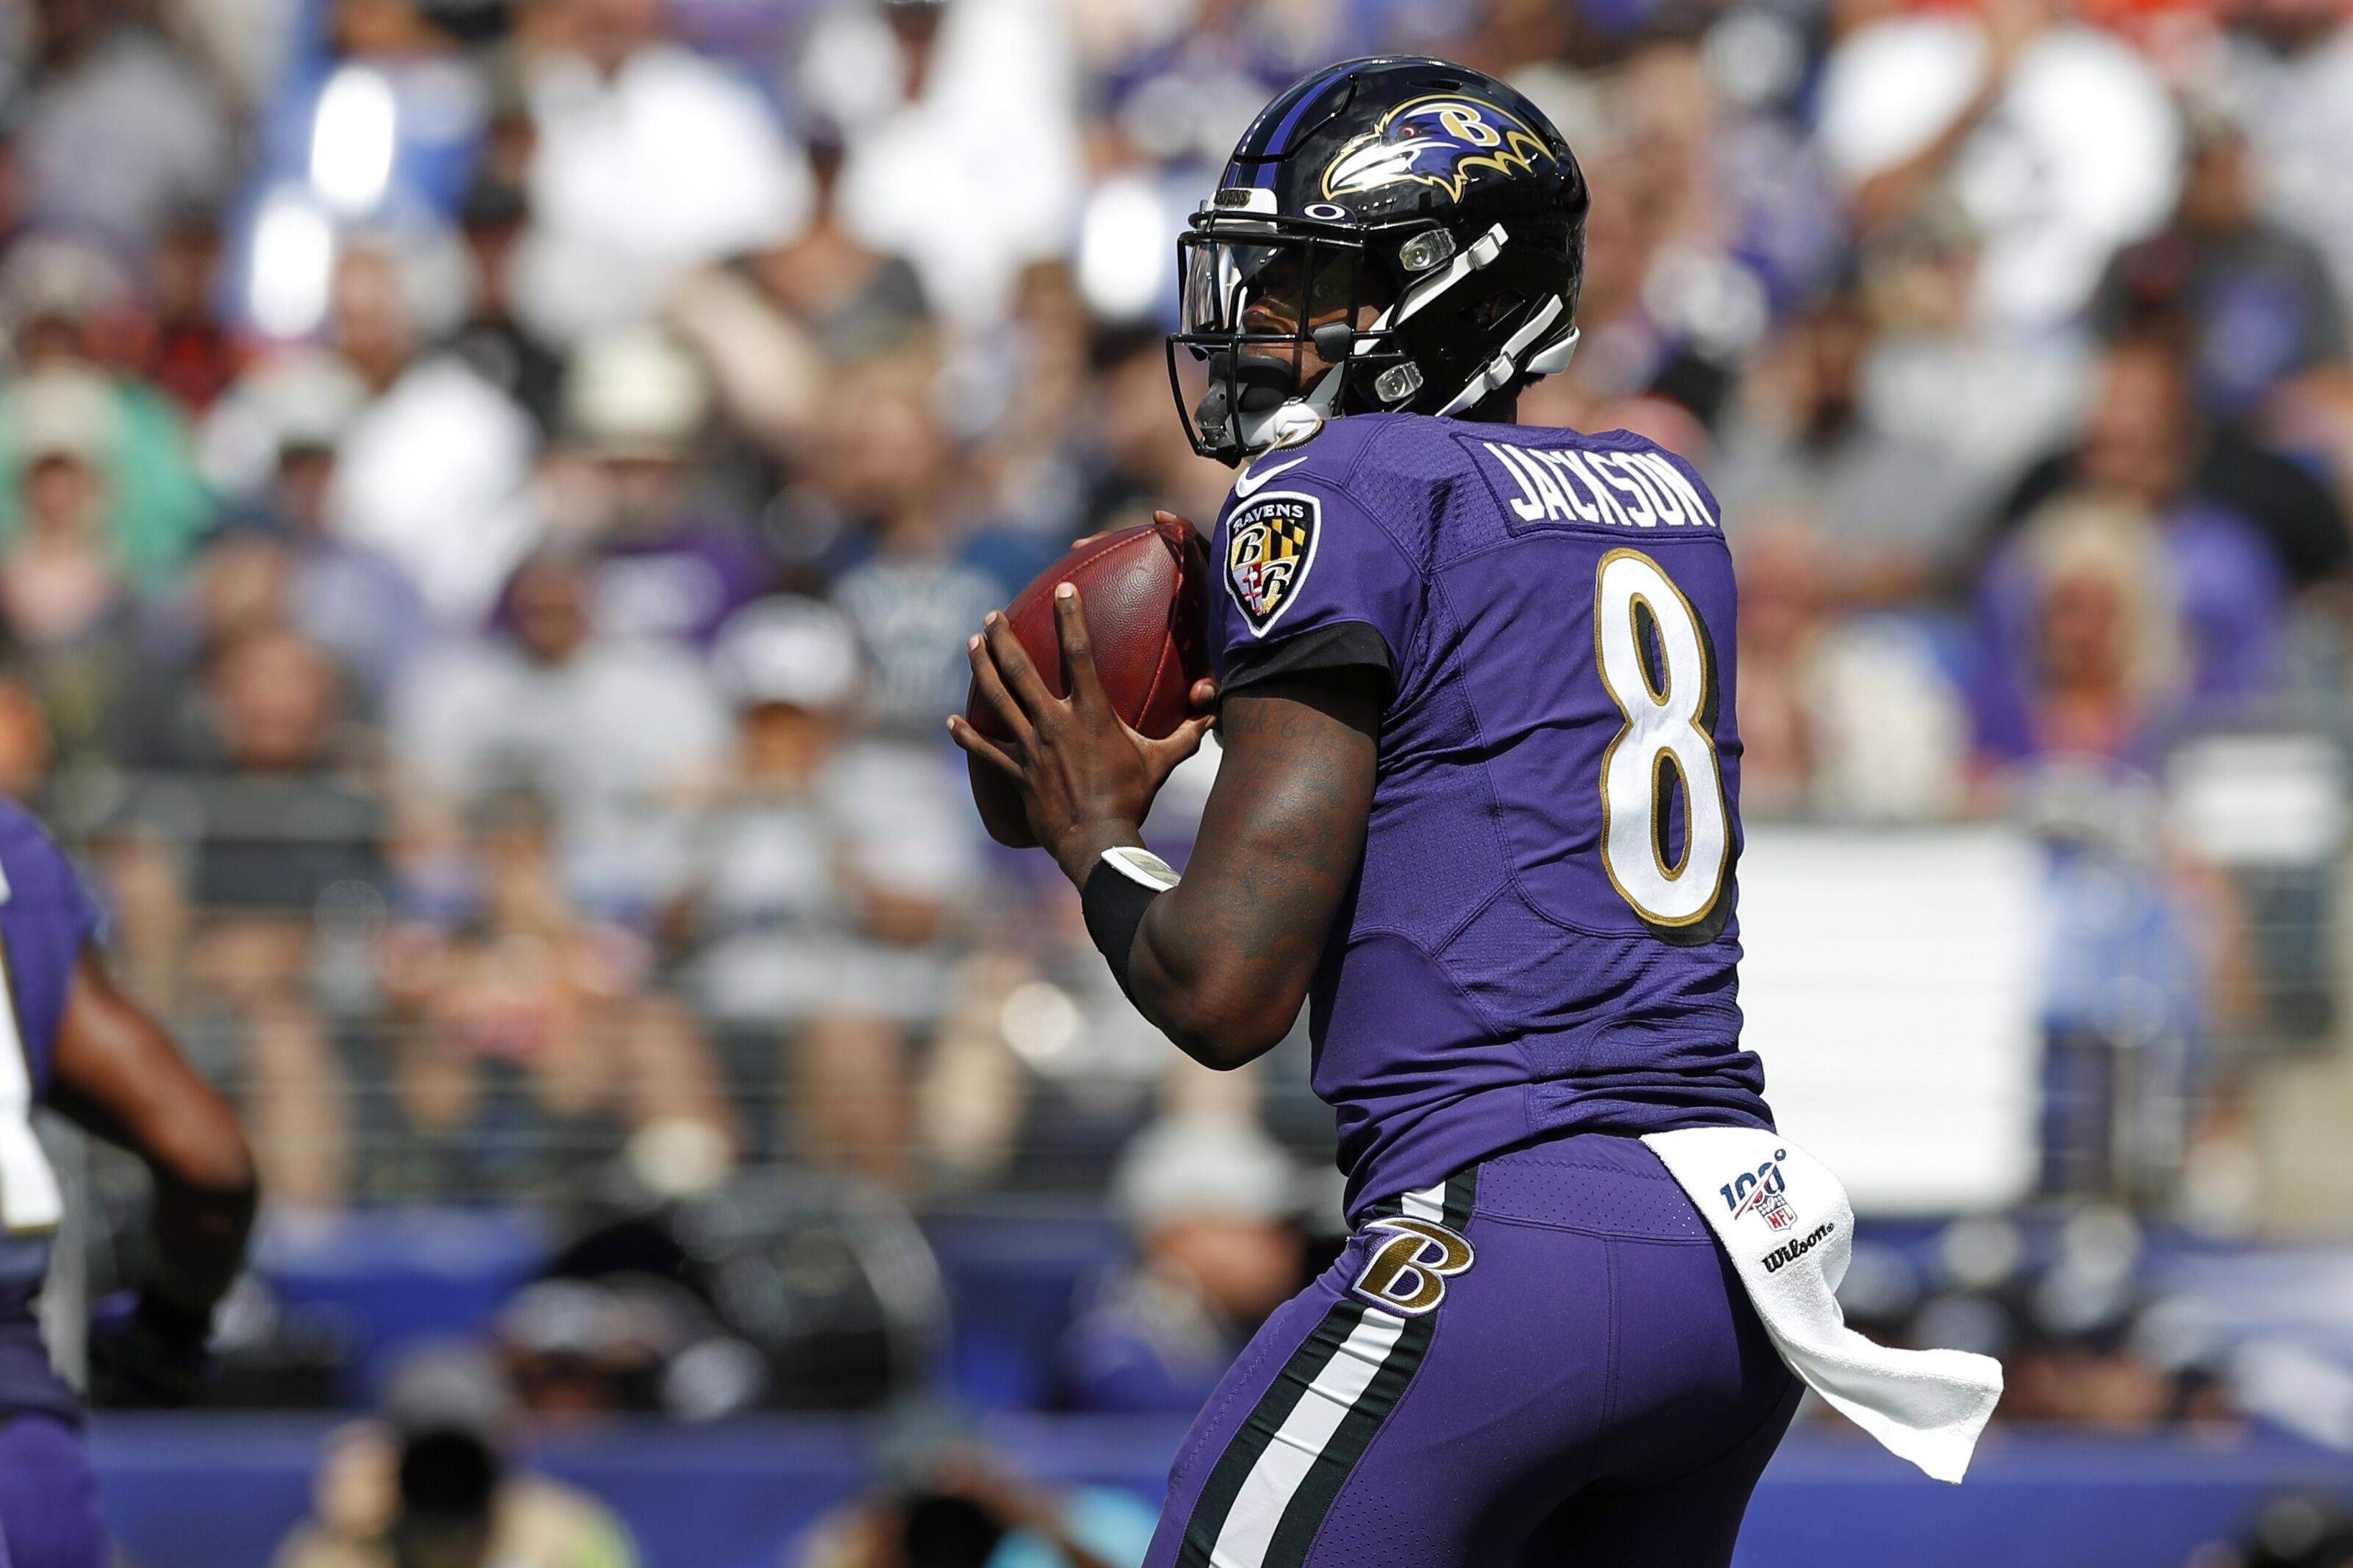 What should we make of Lamar Jackson and the Ravens?